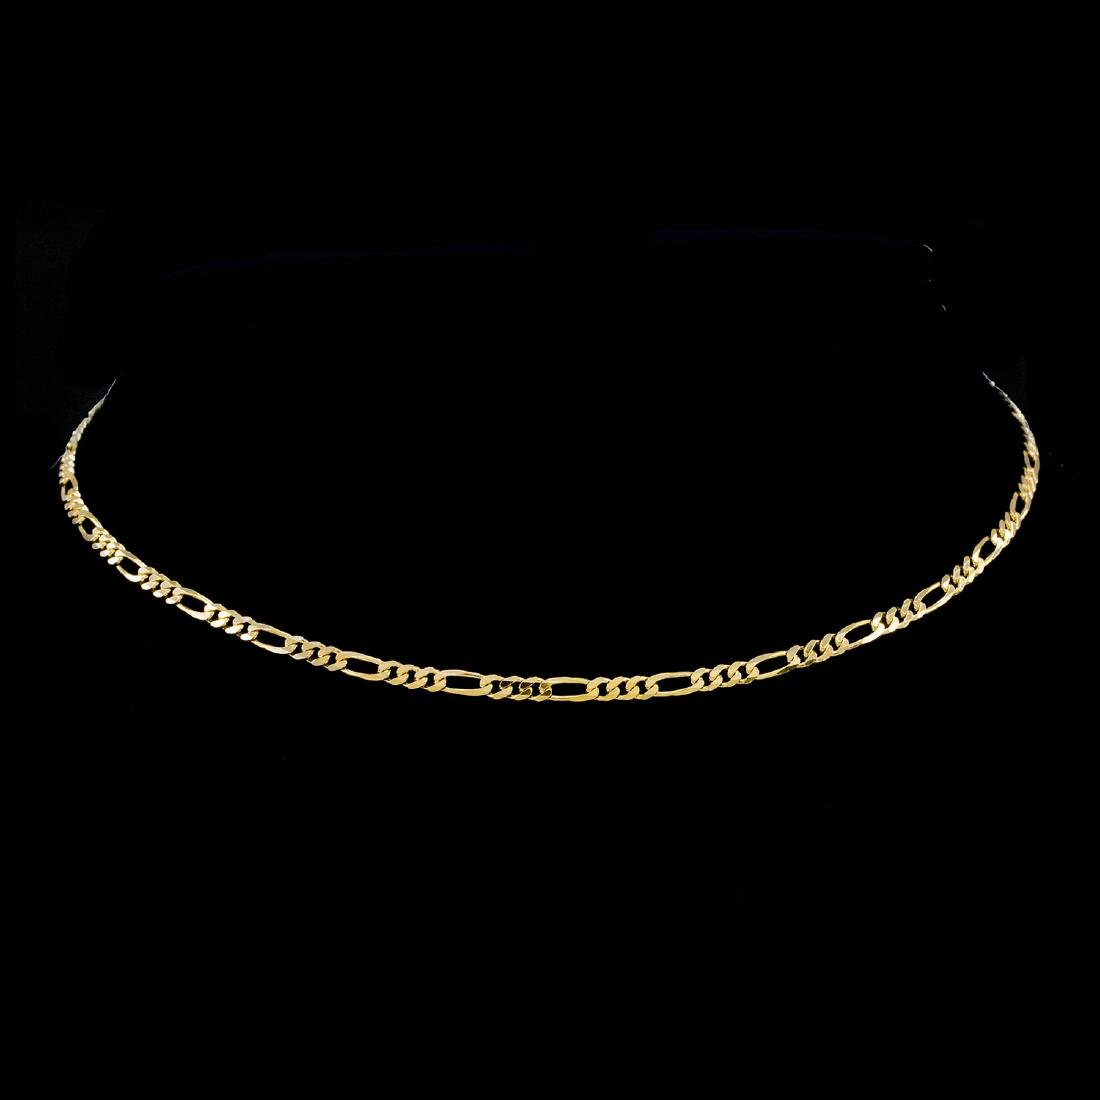 *Fine Jewelry 14KT Gold, 6.5GM. 16'' Chain Necklace (GL